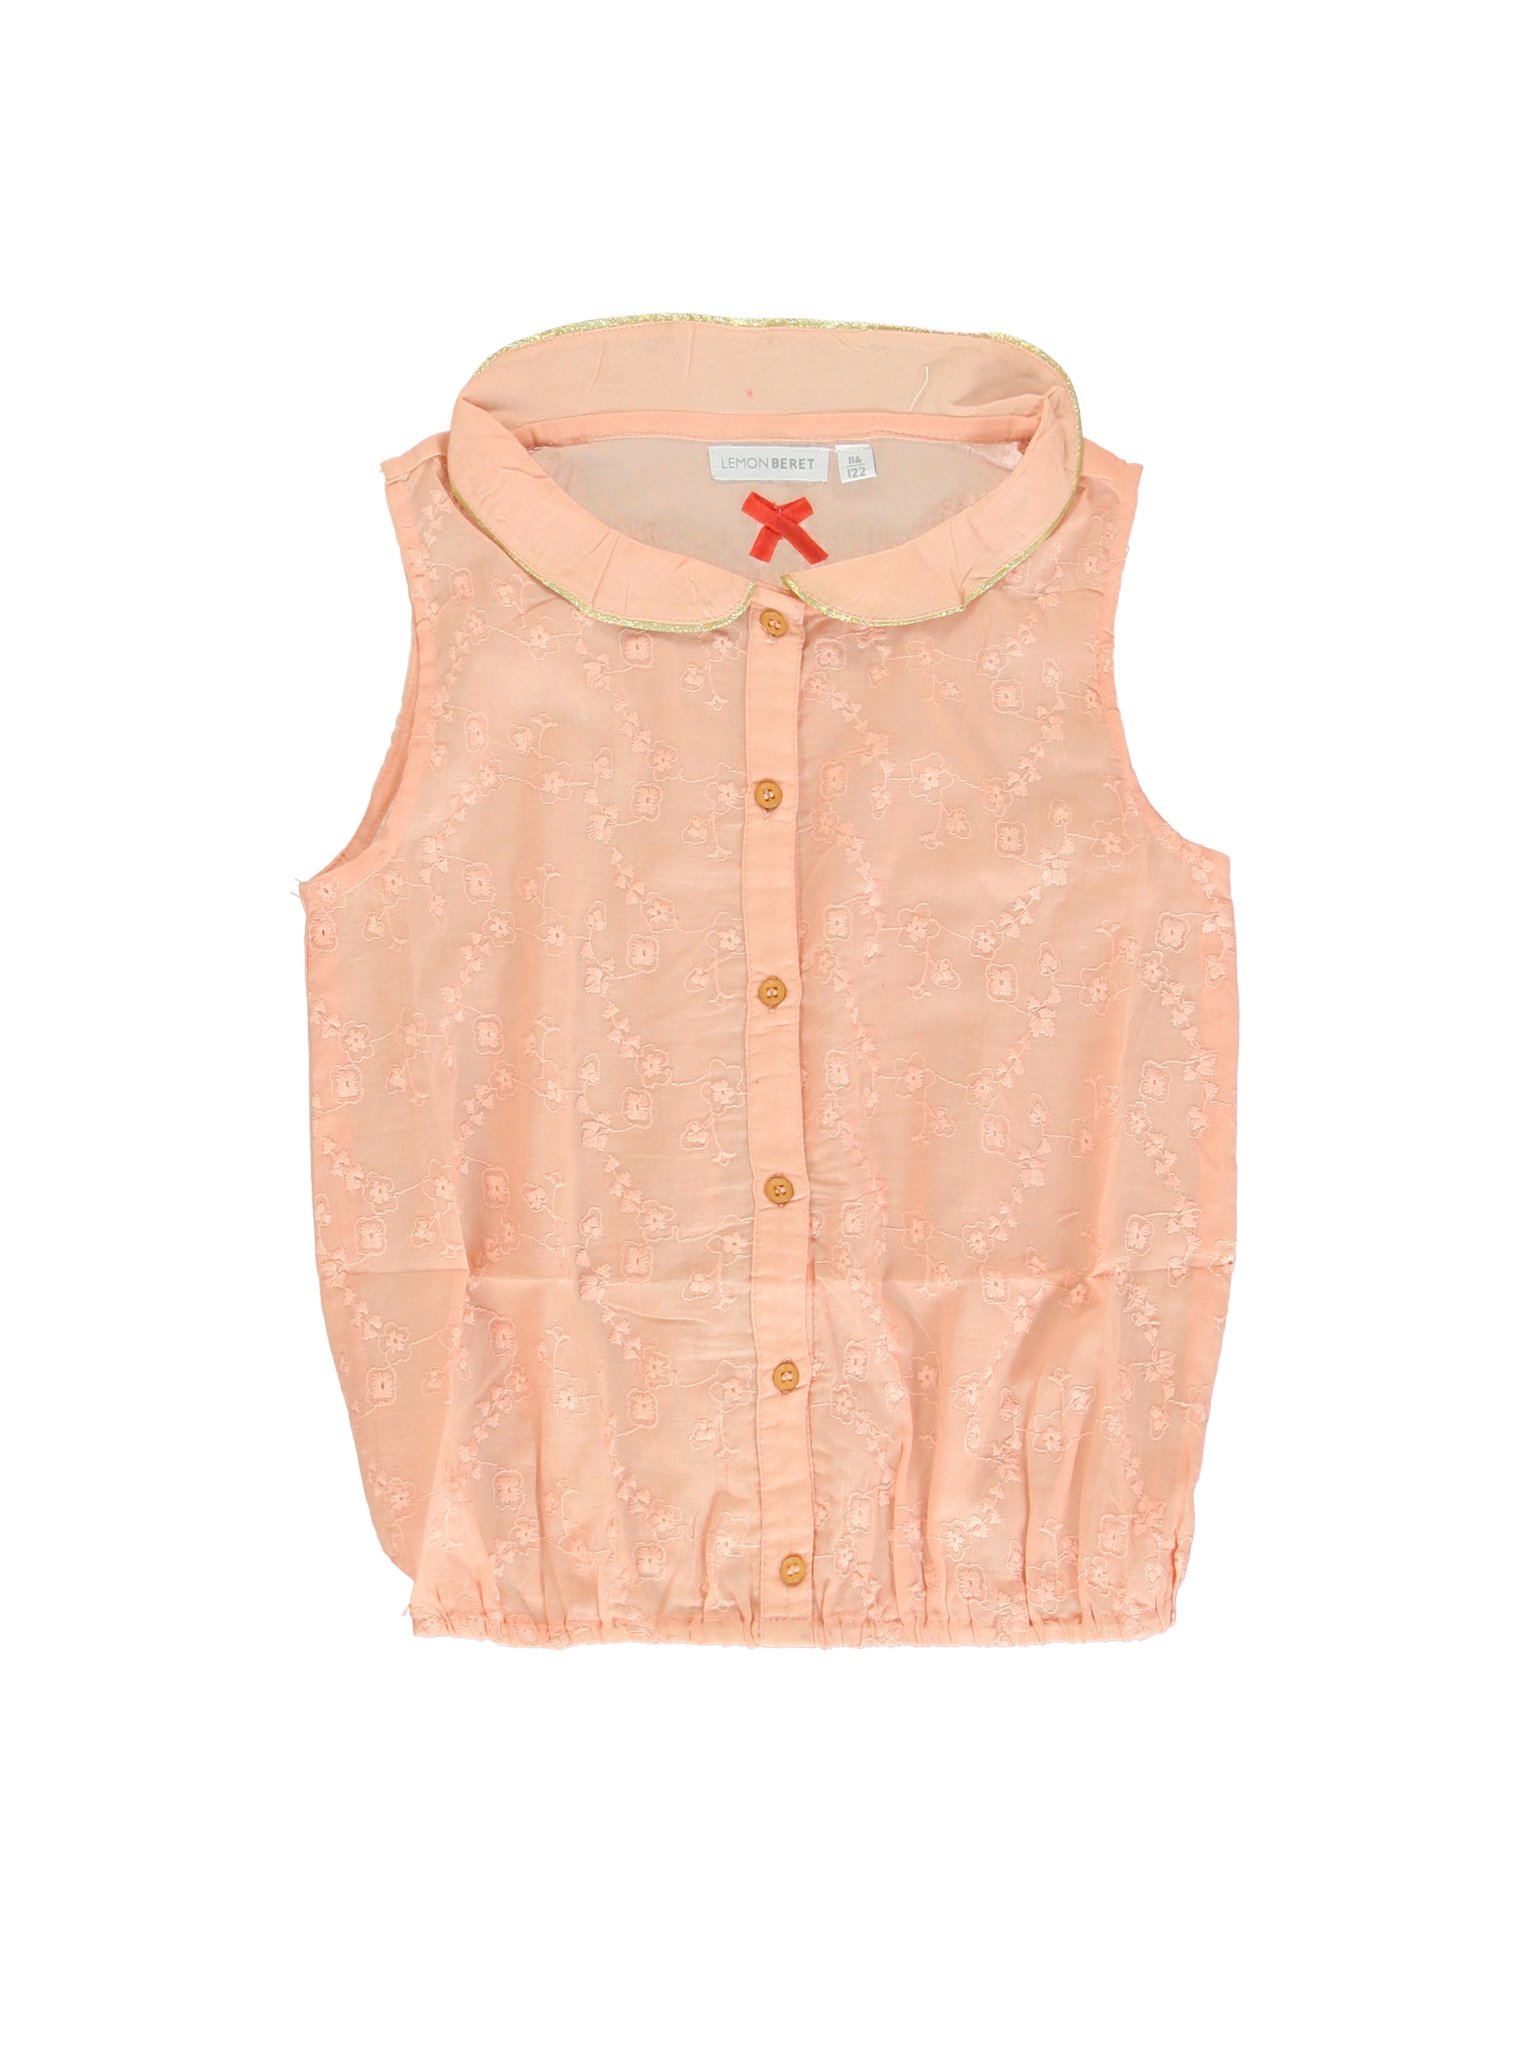 All Brands | Summerproducts Small Girls | Blouse | 10 pcs/box